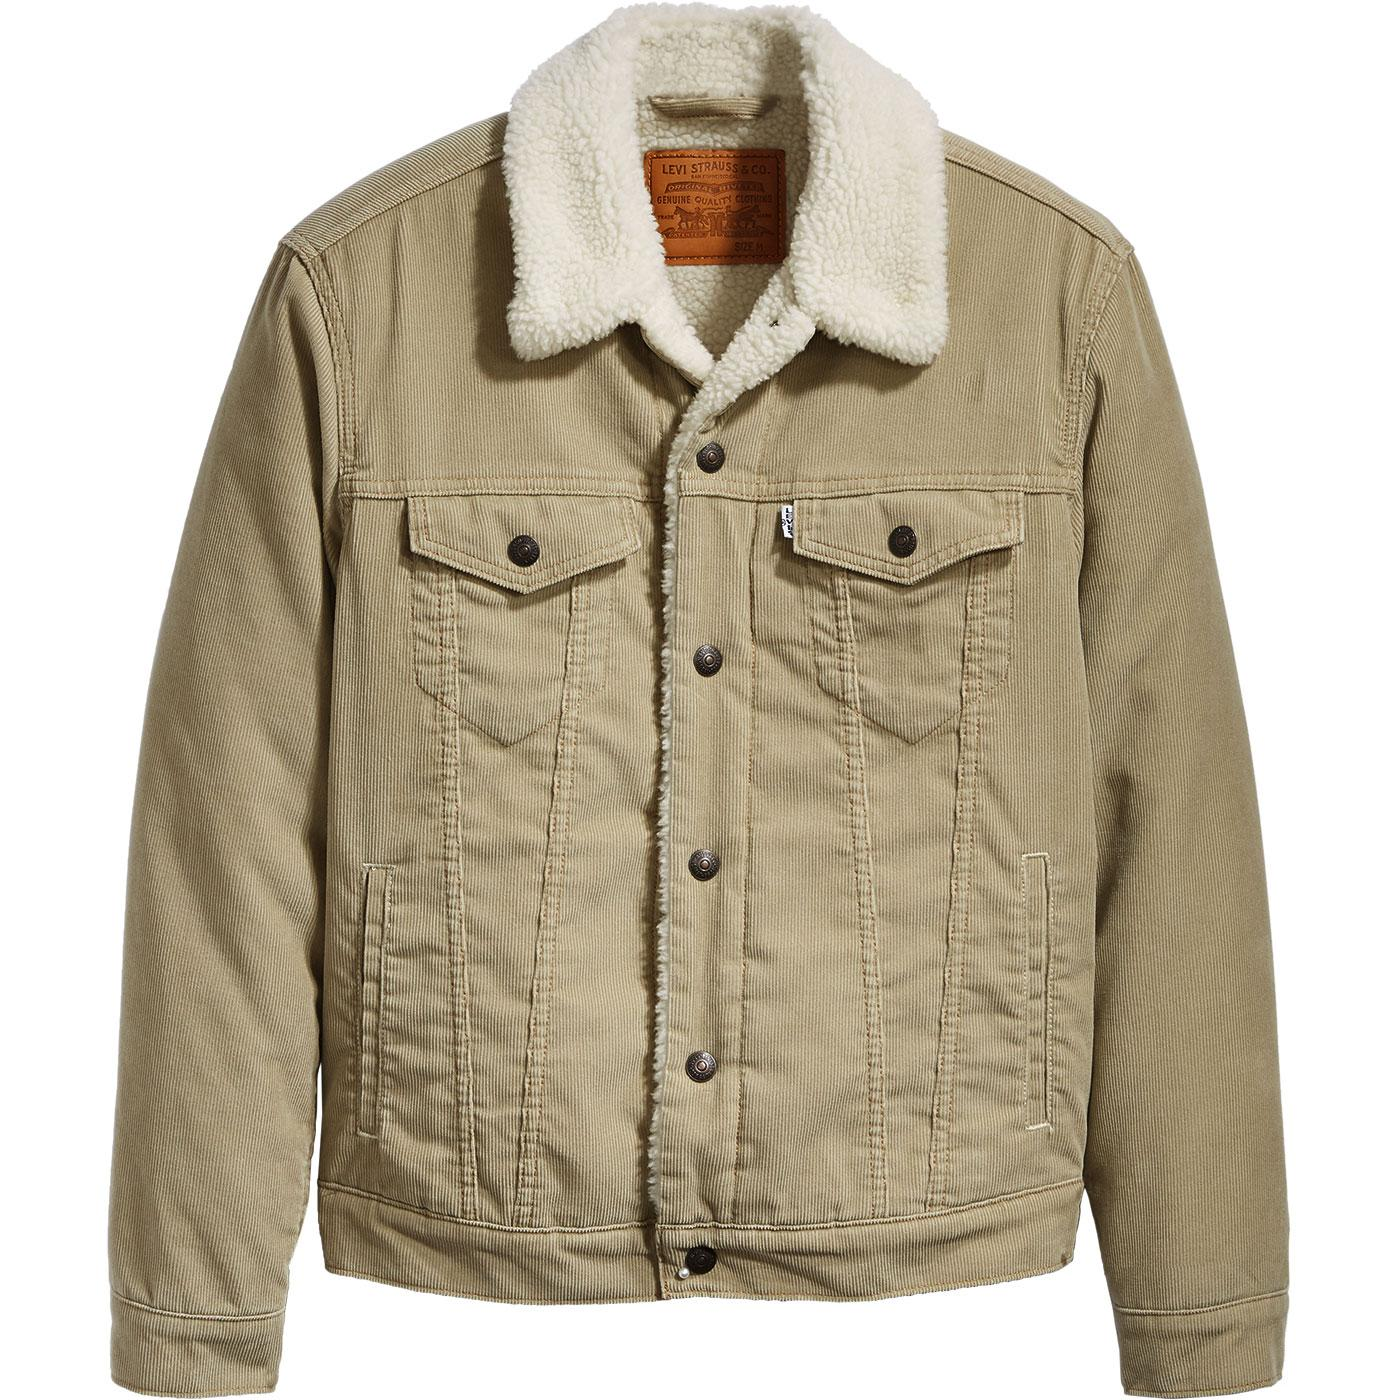 LEVI'S Type 3 Retro Sherpa Cord Trucker Jacket (C)